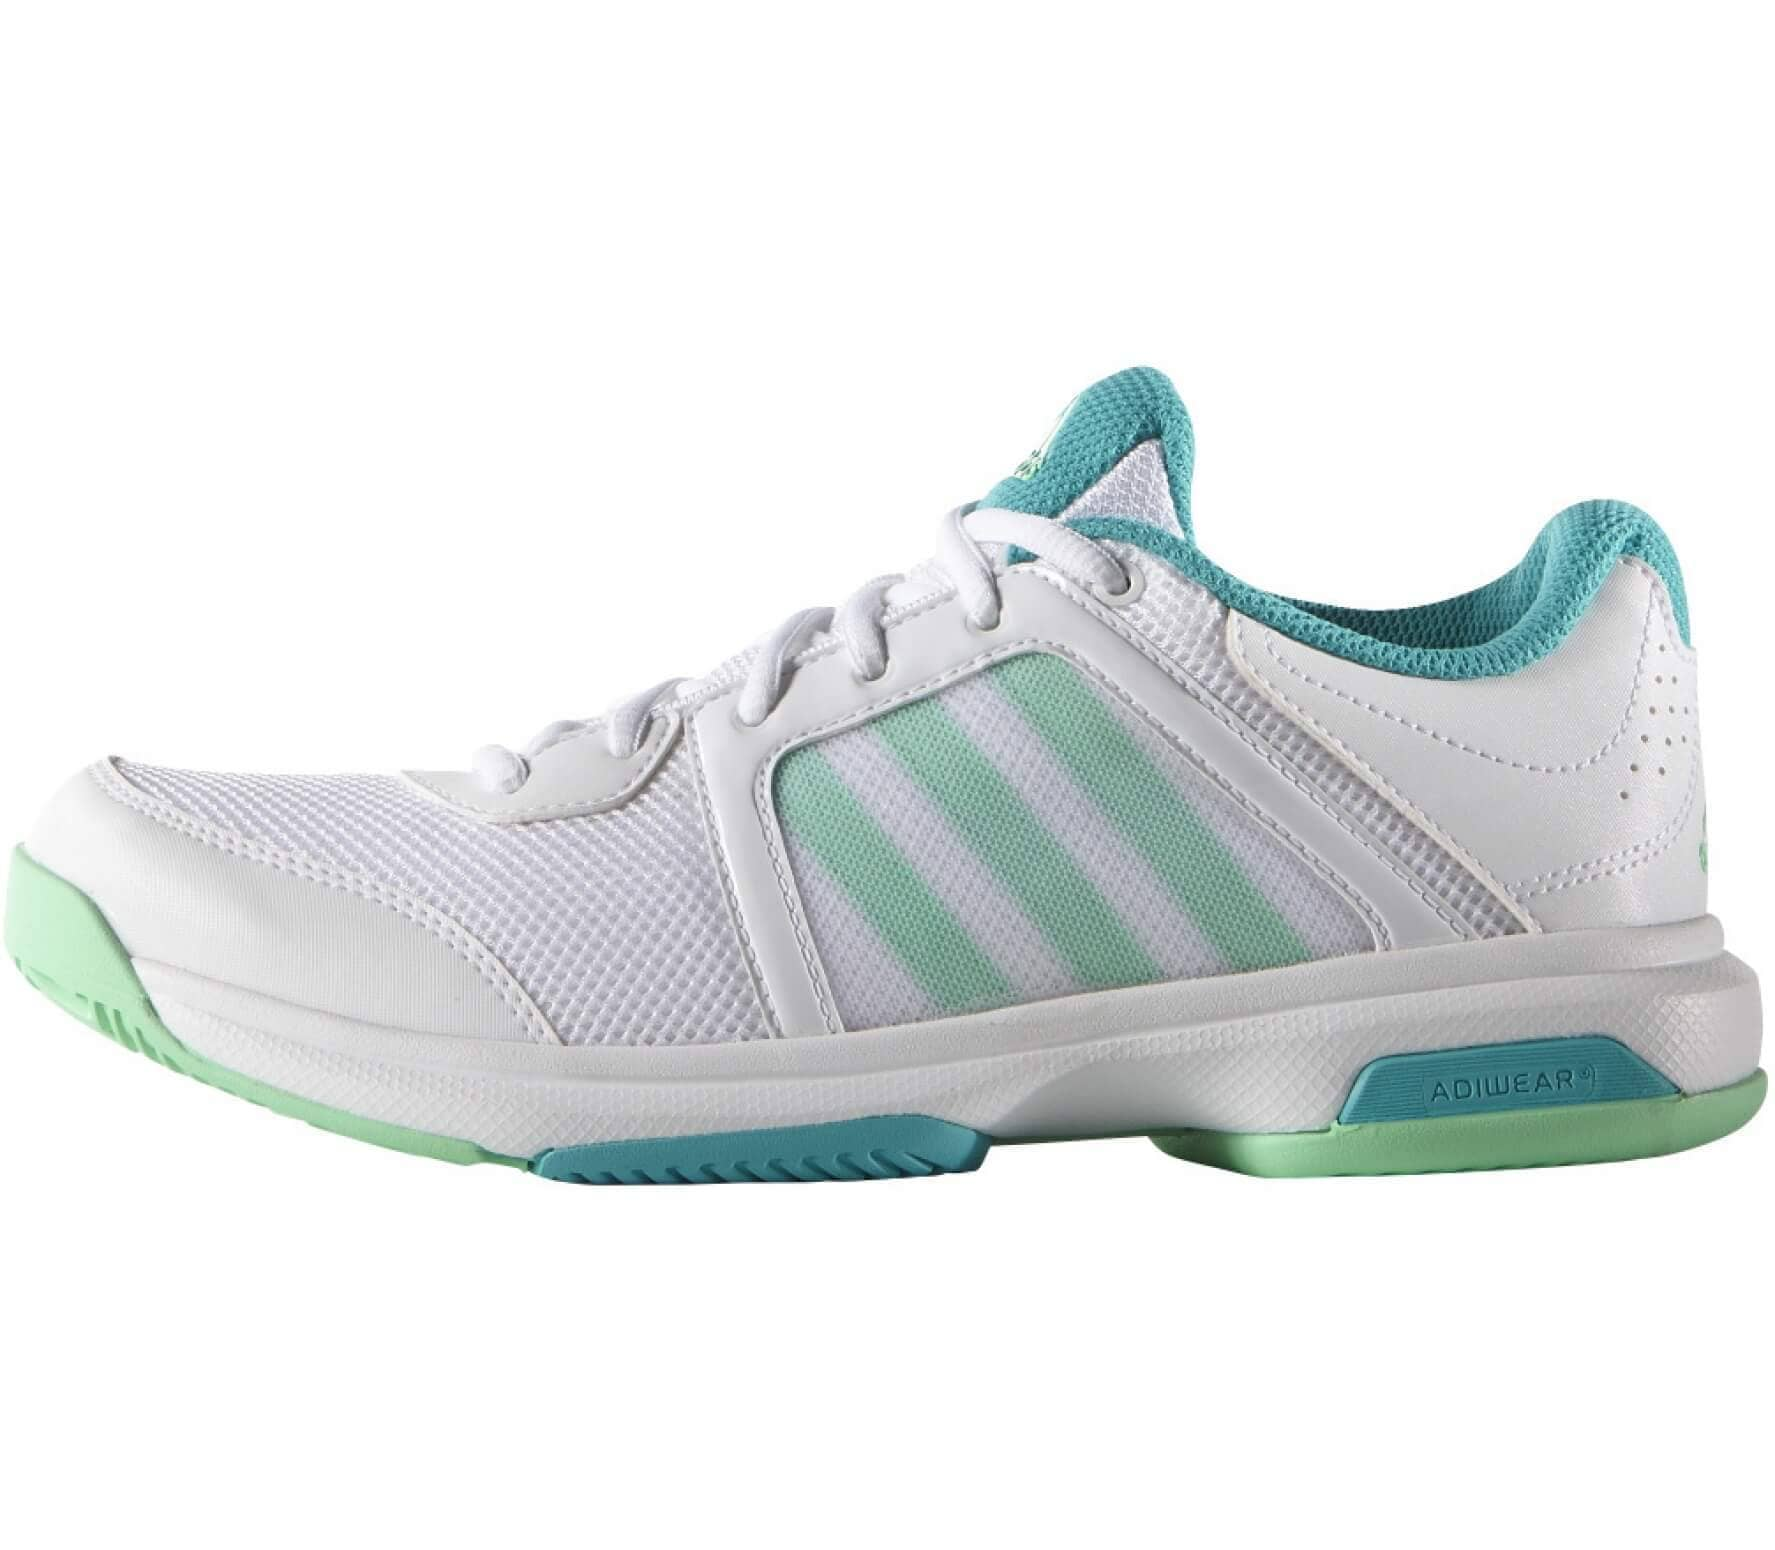 differently 08609 d00e0 adidas - Barricade Aspire Stripes women s tennis shoes (white turquoise)